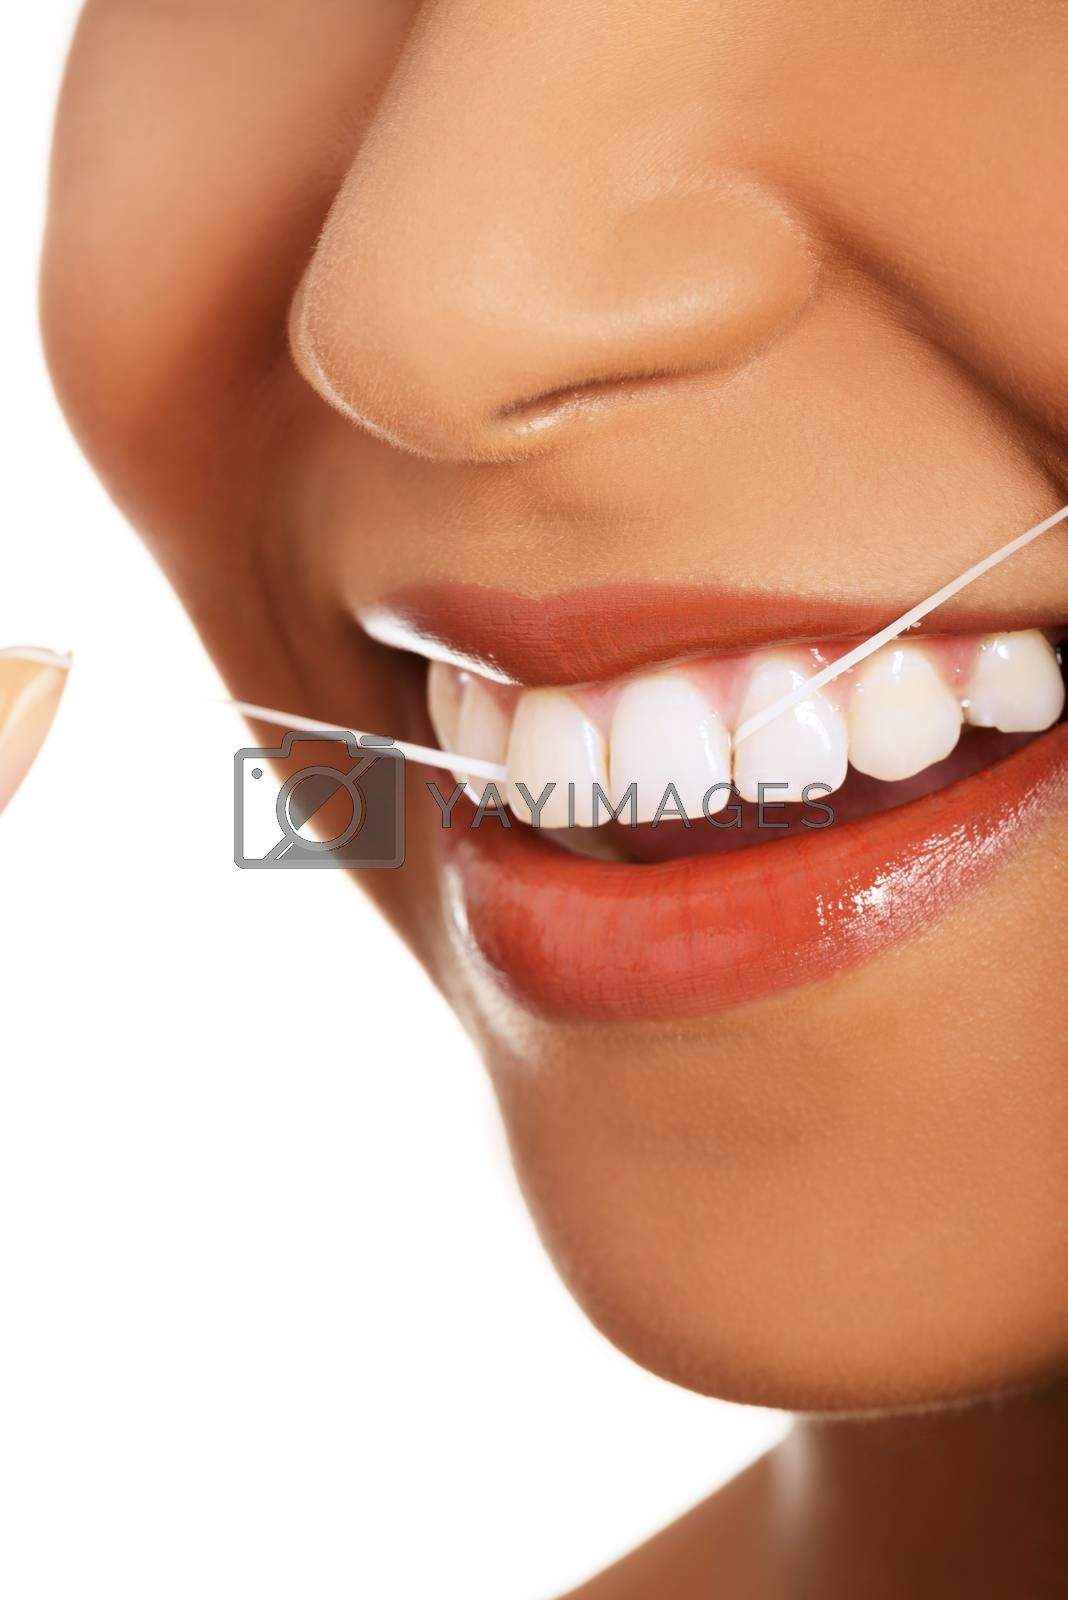 Attractive woman with dental floss. Closeup.  Mouth and teeth. Isolated on white.